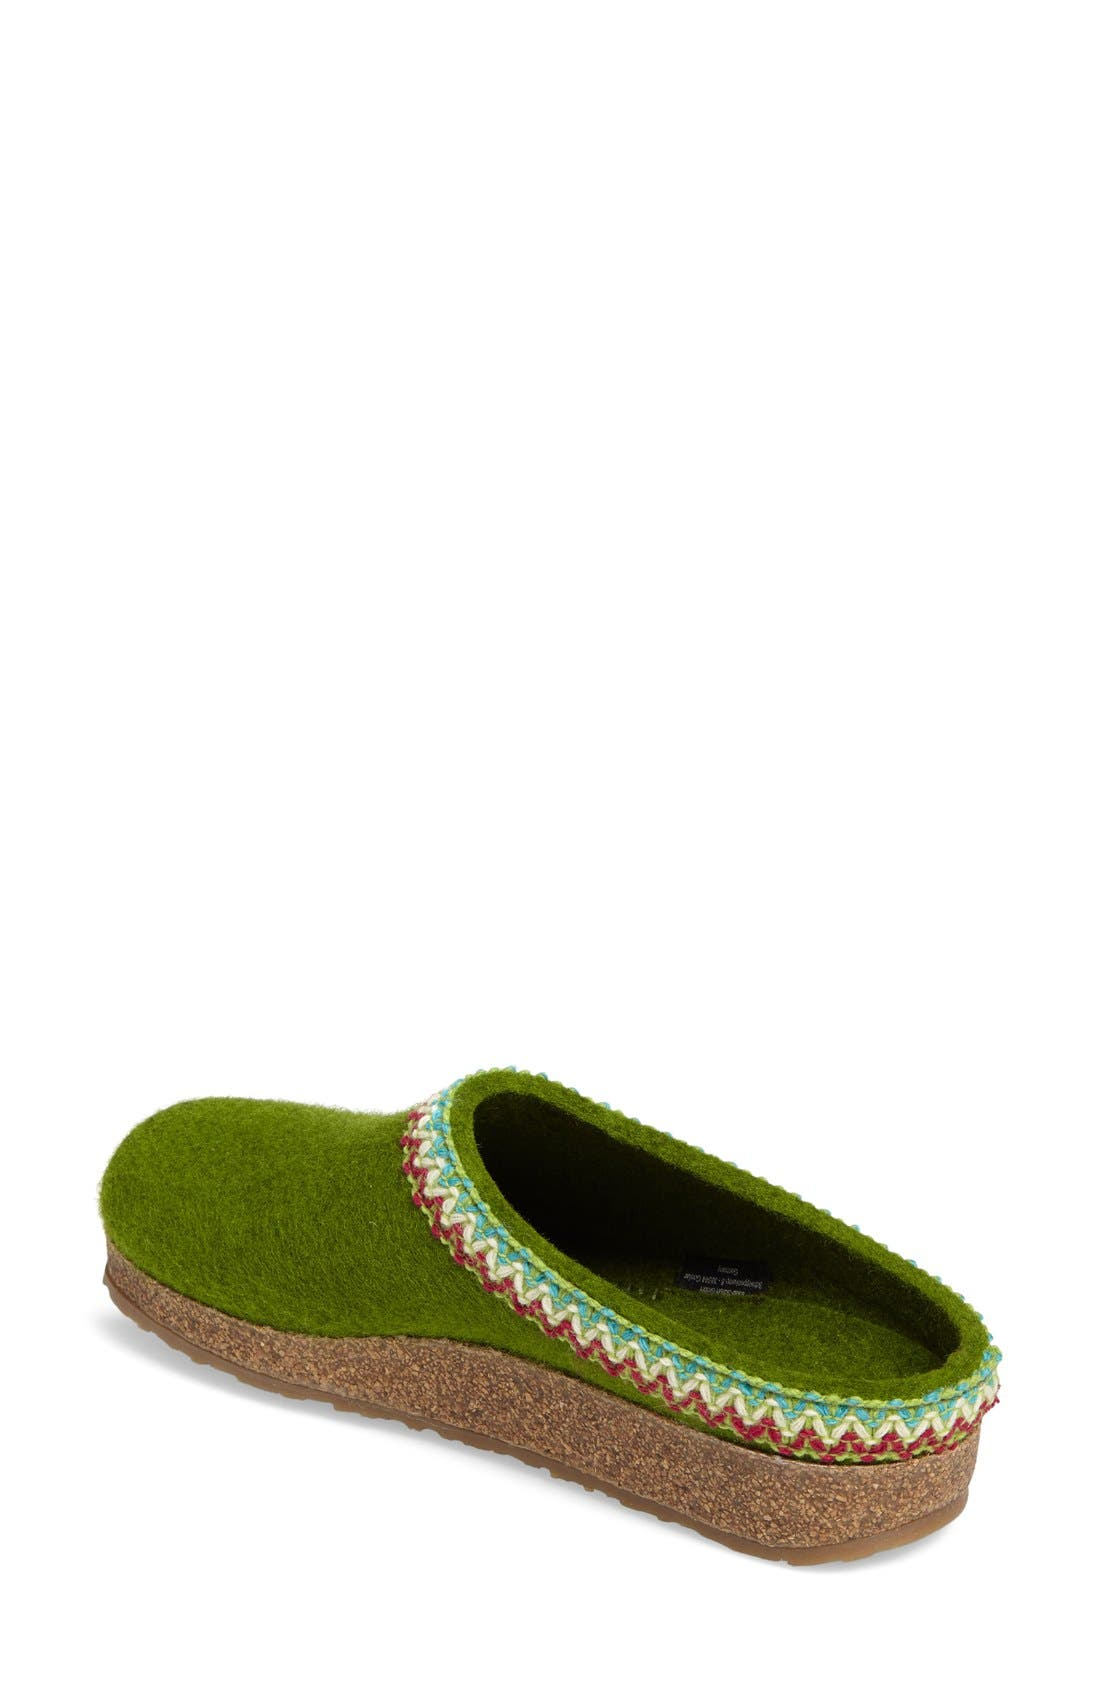 Zigzag Slipper,                             Alternate thumbnail 17, color,